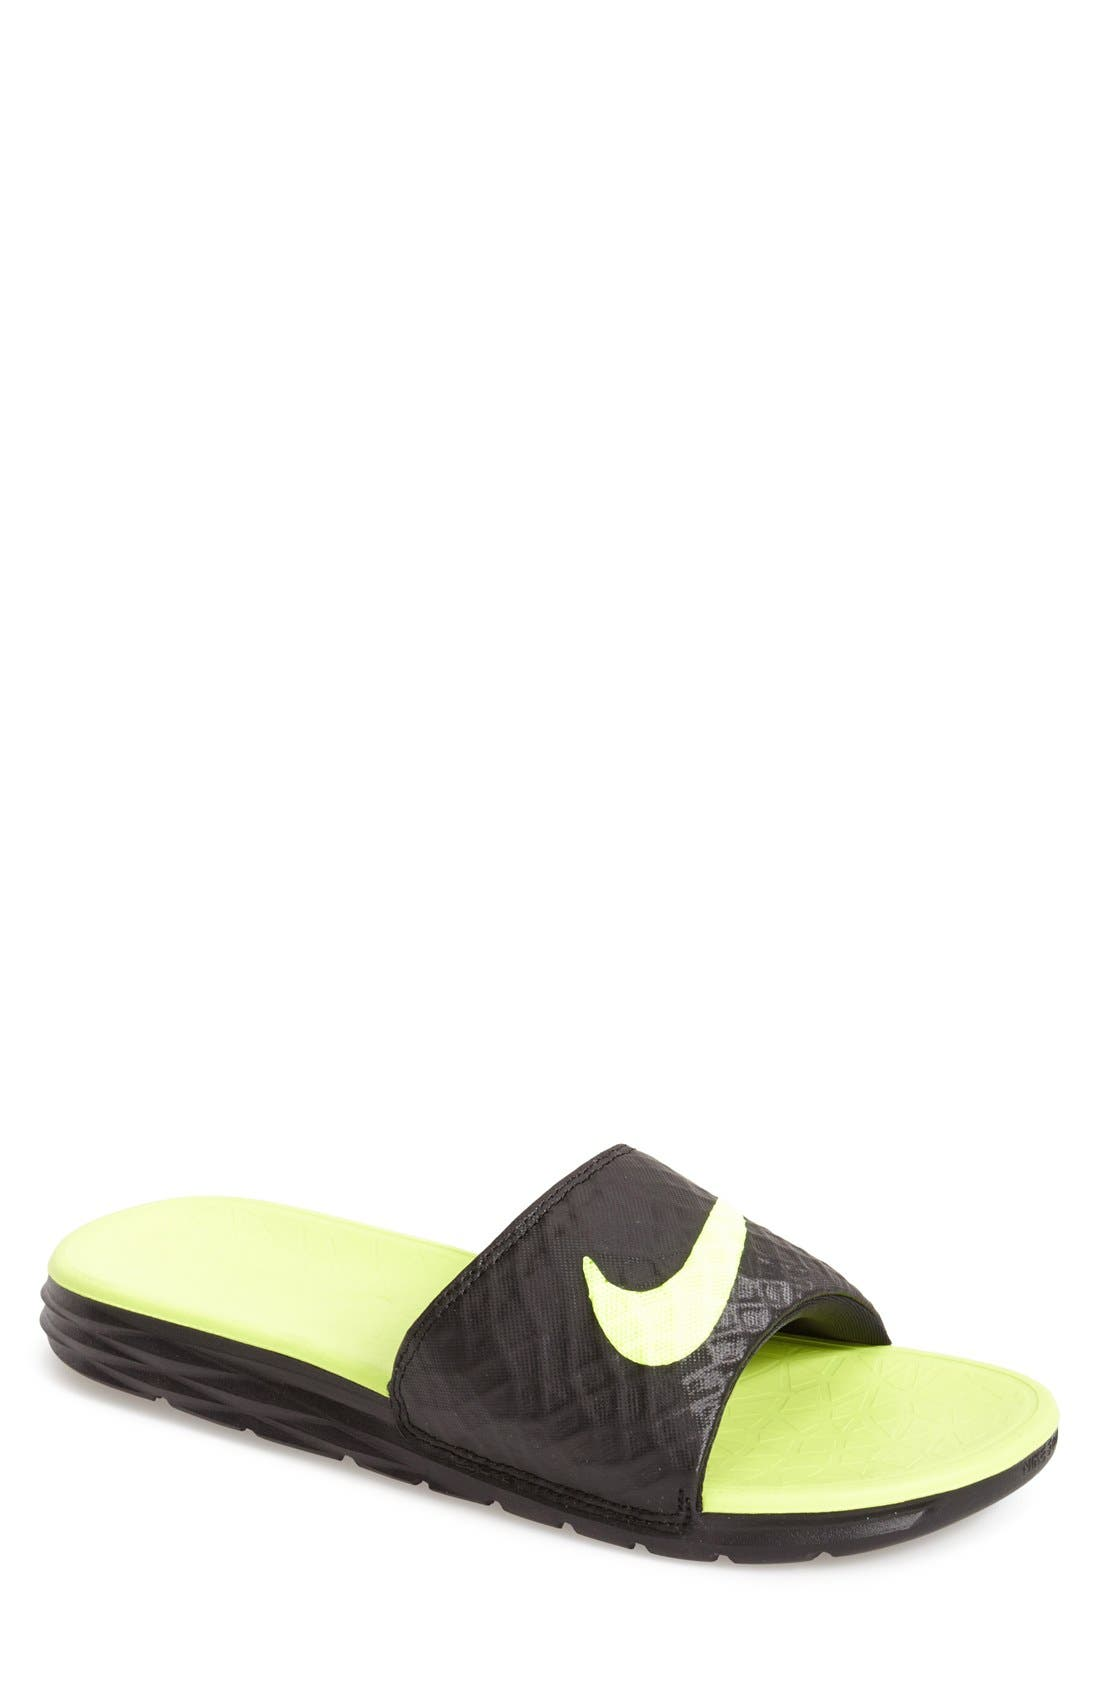 'Benassi Solarsoft 2' Slide Sandal,                             Main thumbnail 1, color,                             BLACK/ VOLT